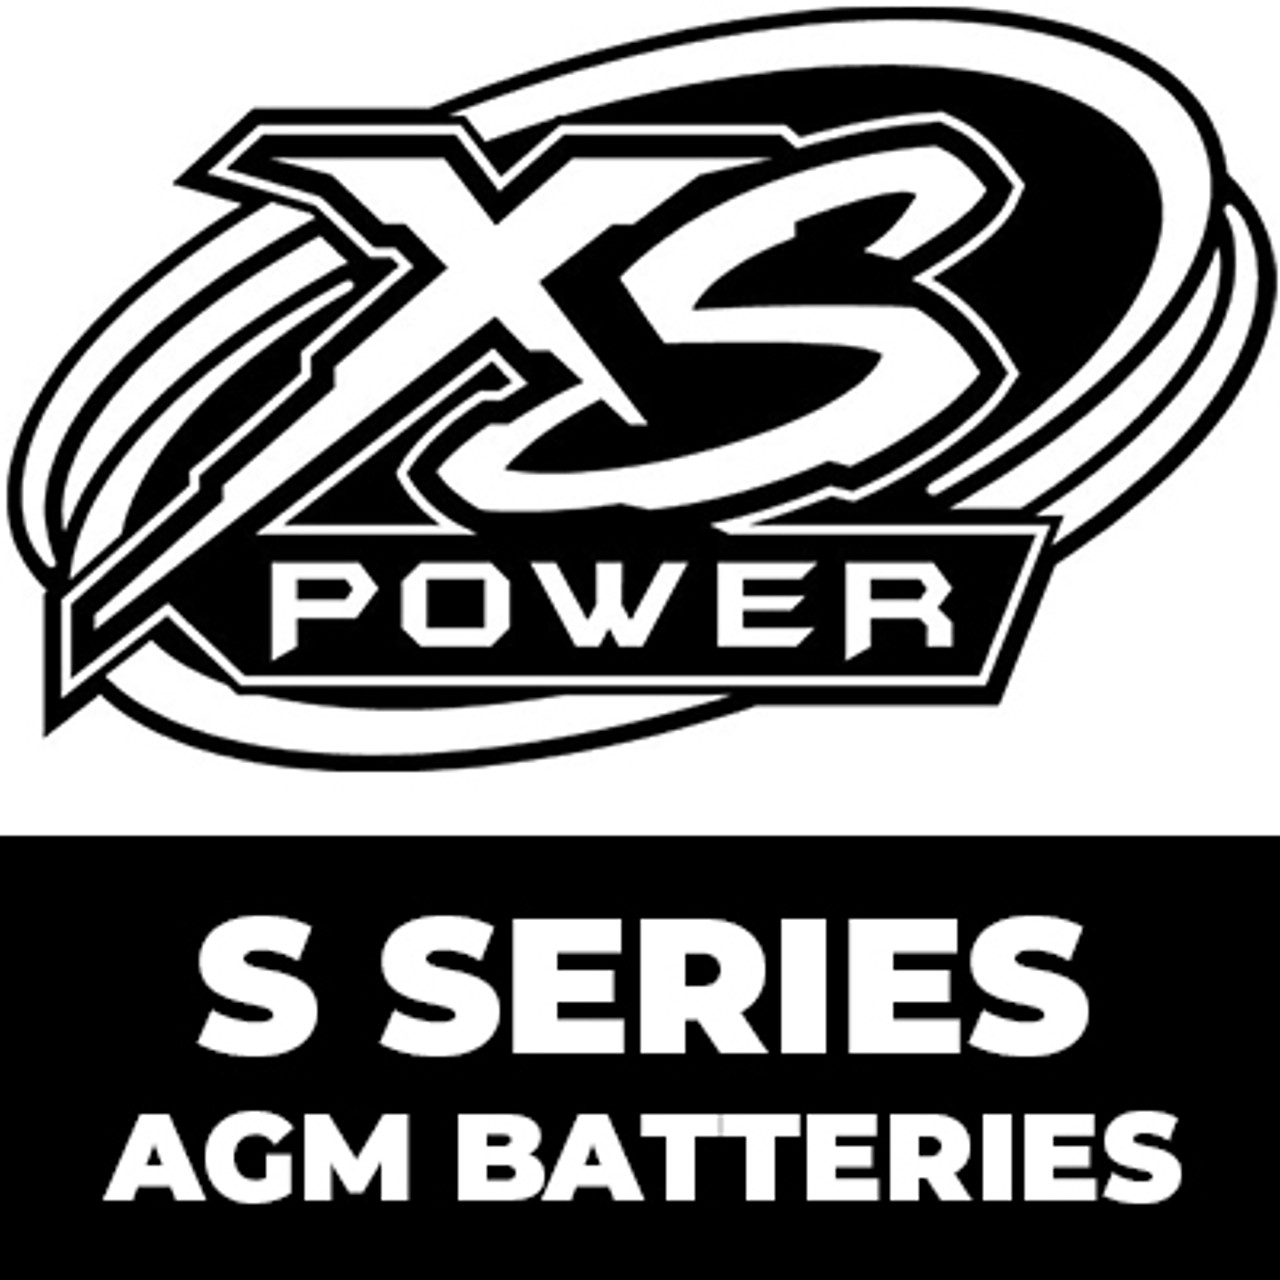 XS Power S Series AGM Batteries